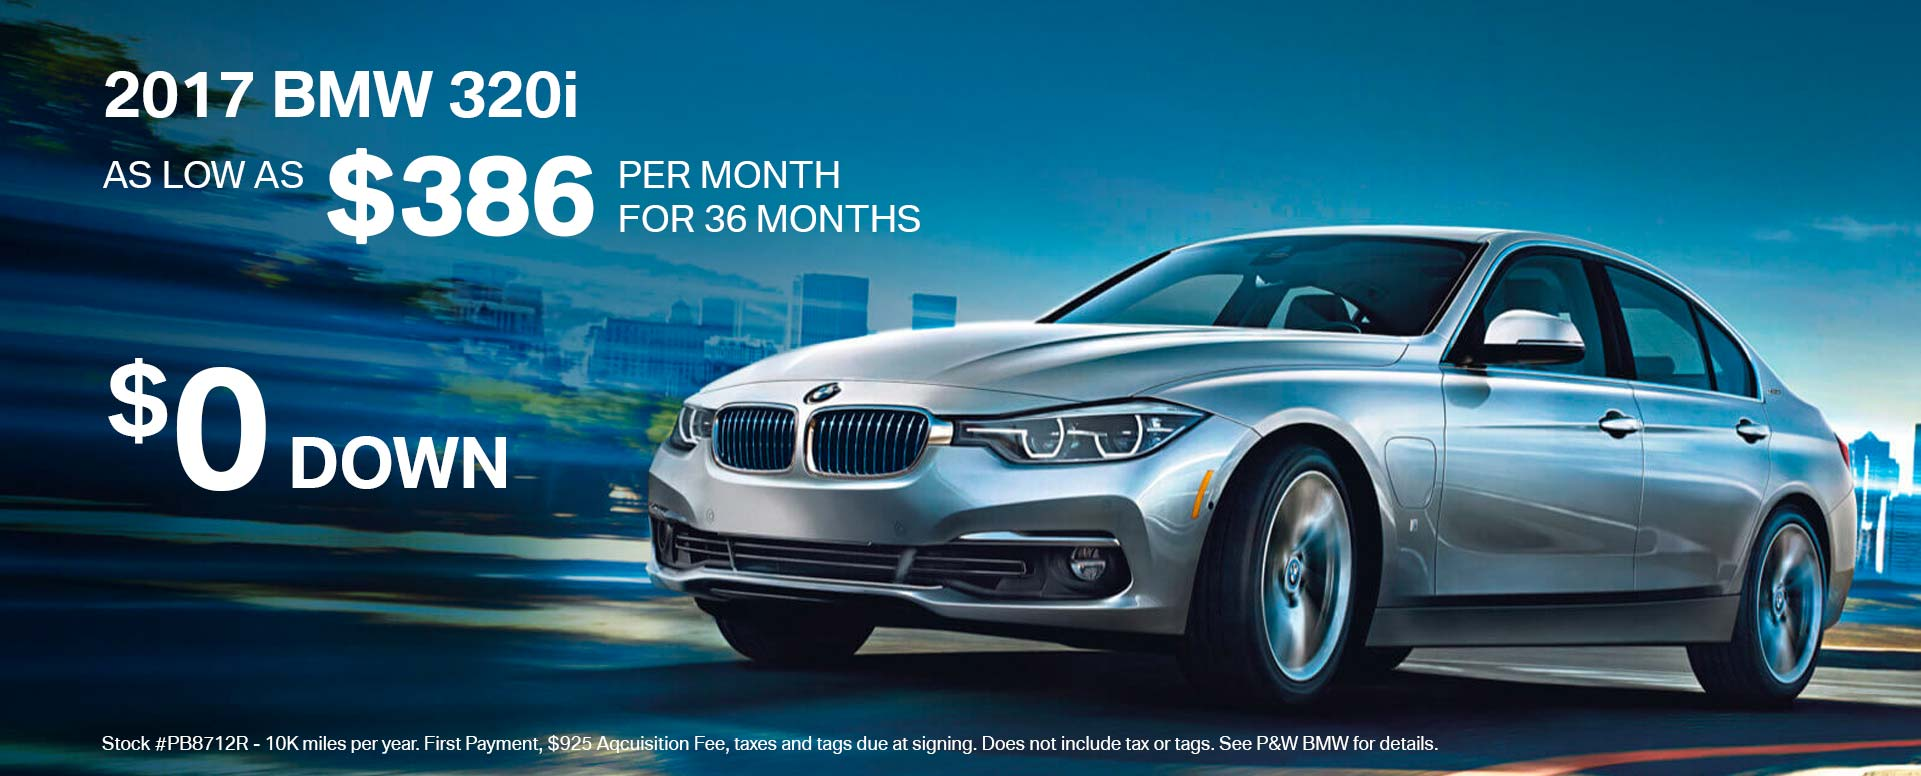 P & W BMW | New BMW dealership in Pittsburgh, PA 15213